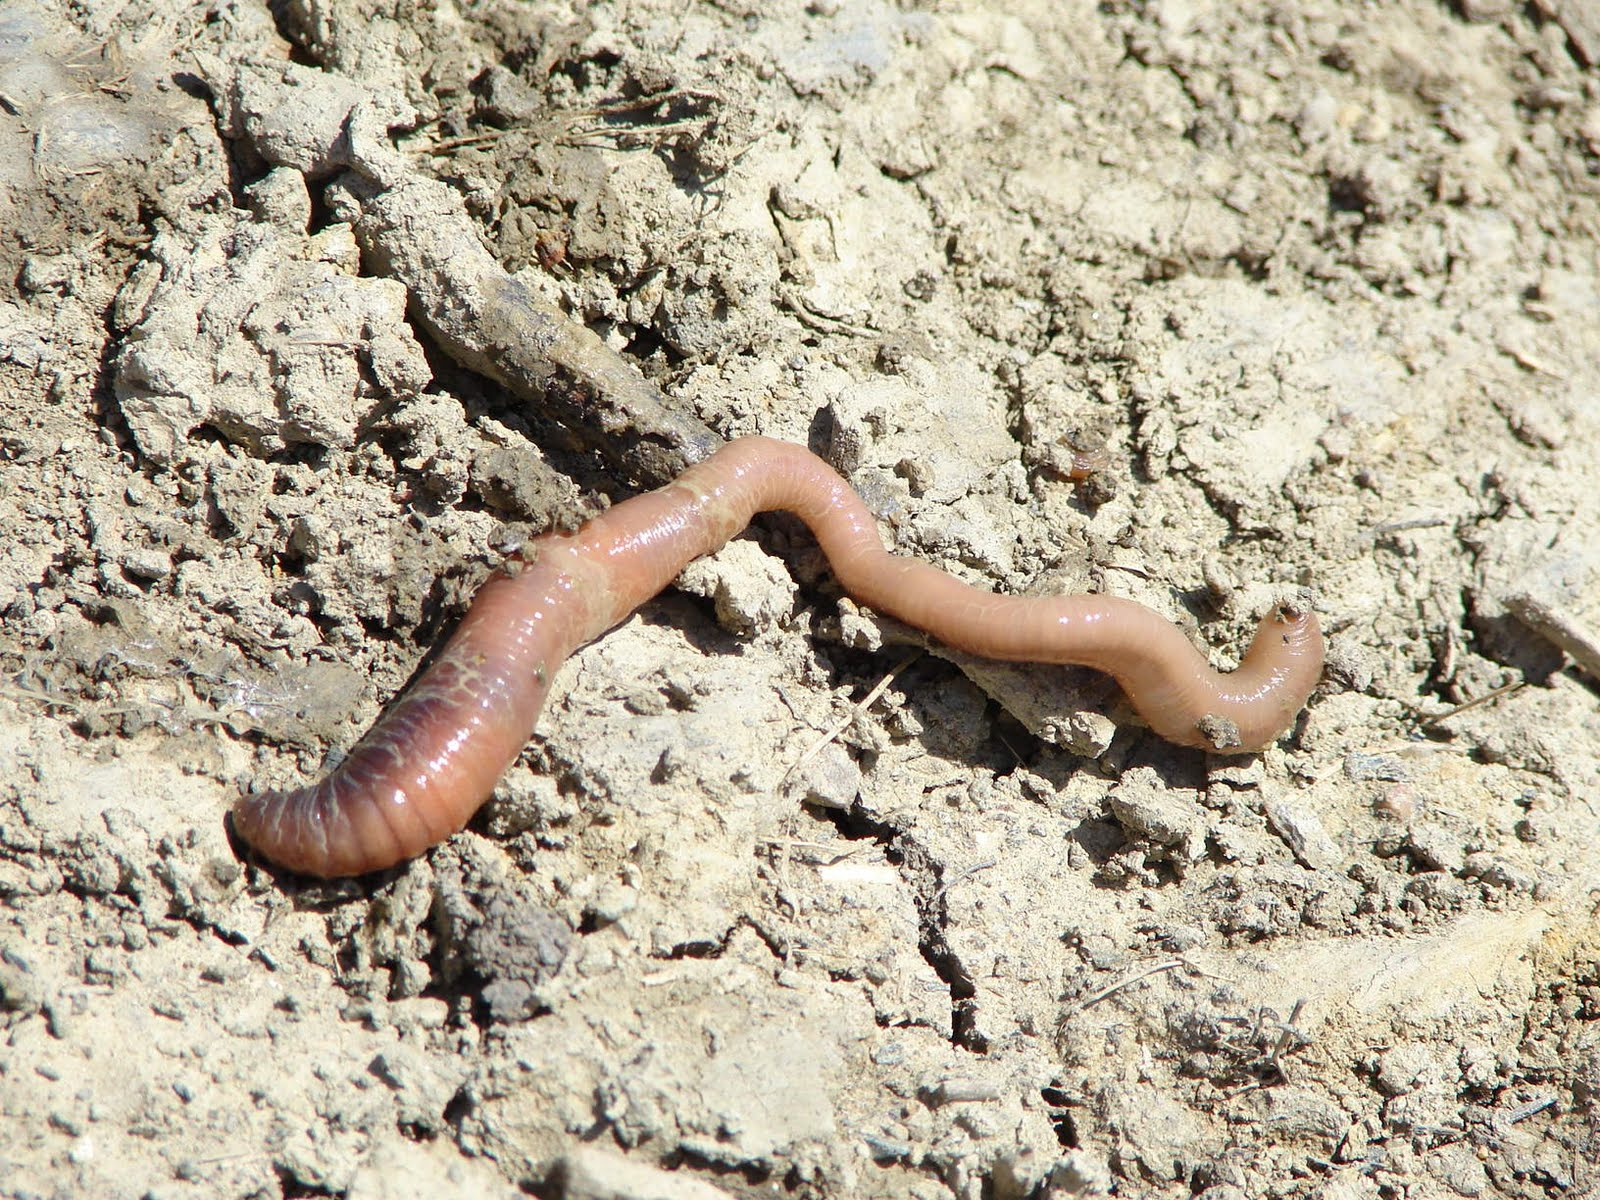 earthworms - photo #11